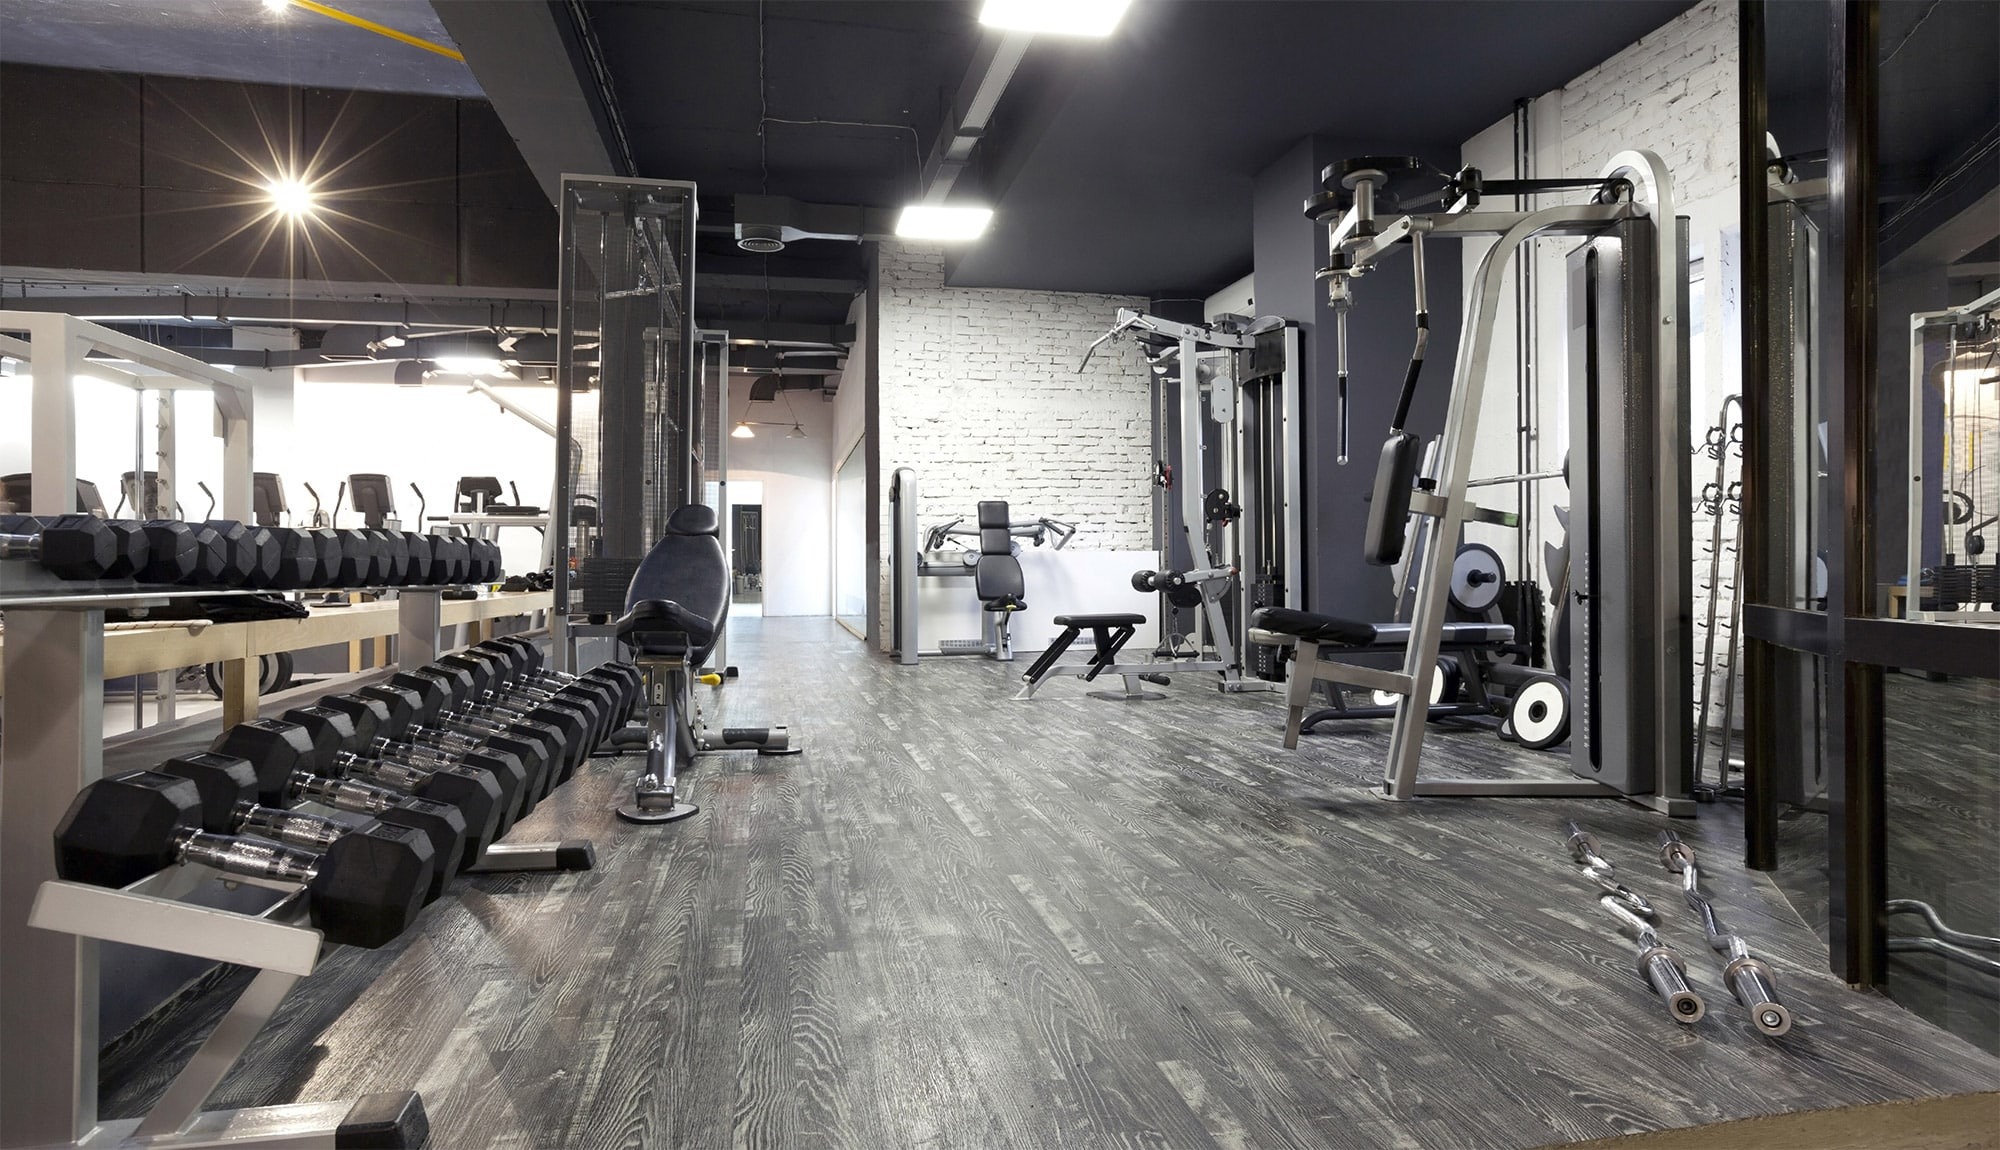 ukactive says Government has just days to close loophole in Coronavirus Act as landlords threaten legal action against gyms and leisure centres